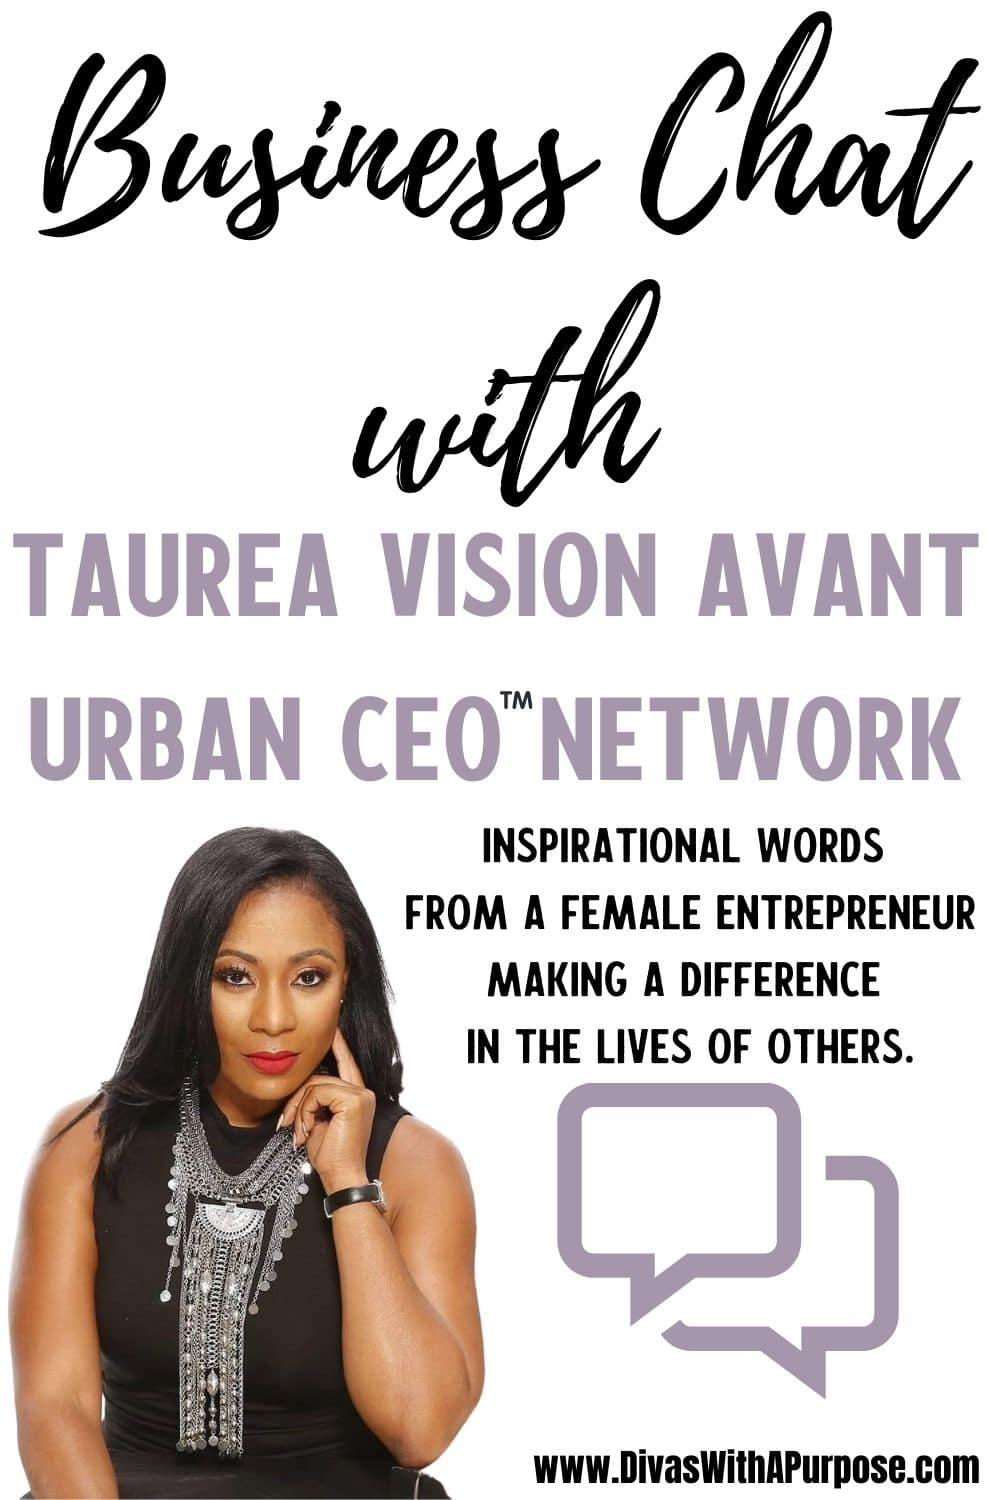 A business chat with URBAN CEO Founder Taurea Avant on what inspires and motivates her in business.